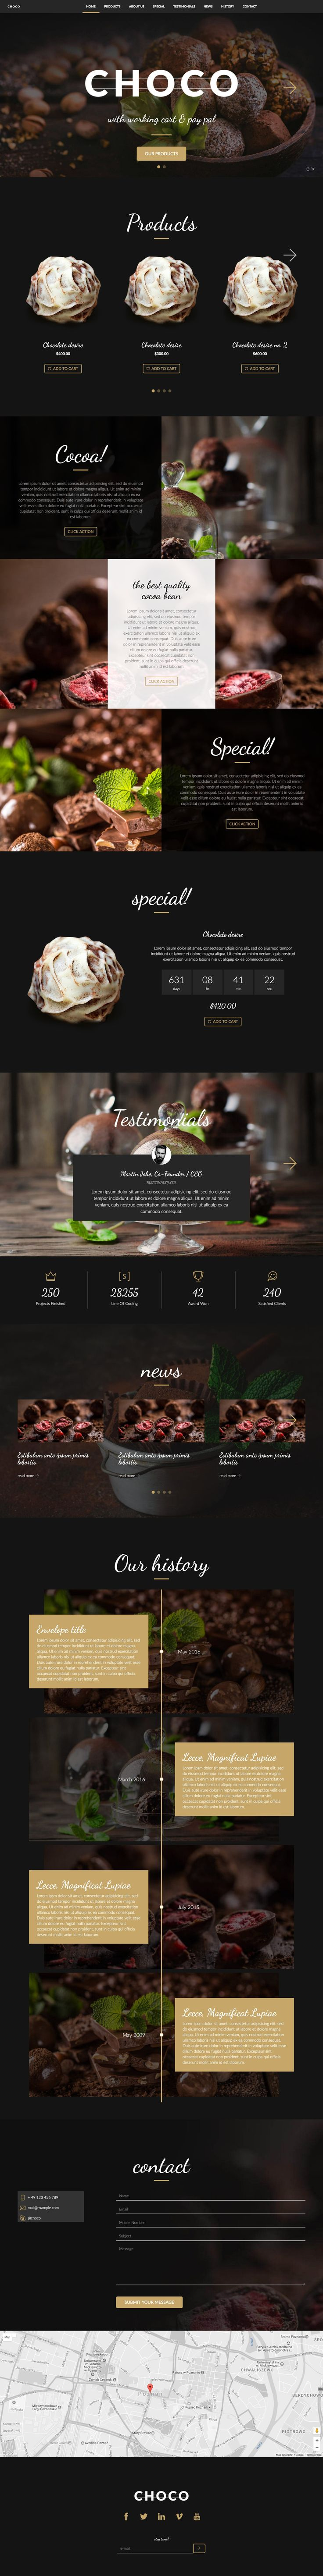 'Choco' is a One Page HTML E-commerce template perfect for a shop selling between 1 and 10 products. The template comes with light or dark colors scheme options - the dark pictured here. The real win is this template already has a working cart that integrates right into PayPal. Other features include big image intro slider, product carousal, specials section (with countdown timer), testimonials to help those conversions, a history timeline, a contact form and of course a location map.